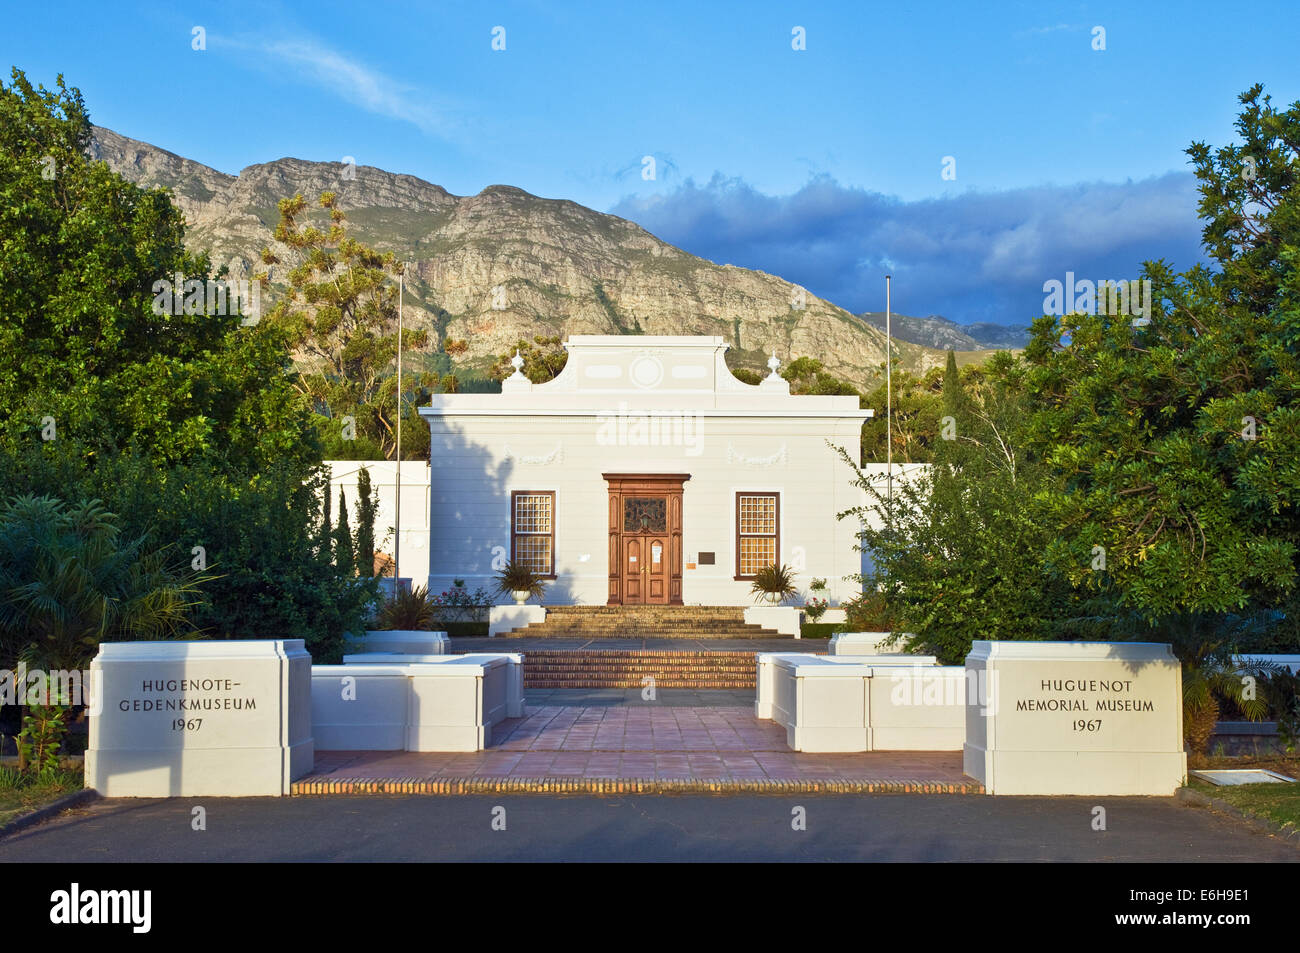 The Huguenot Memorial Museum in Franschhoek, South Africa - Stock Image